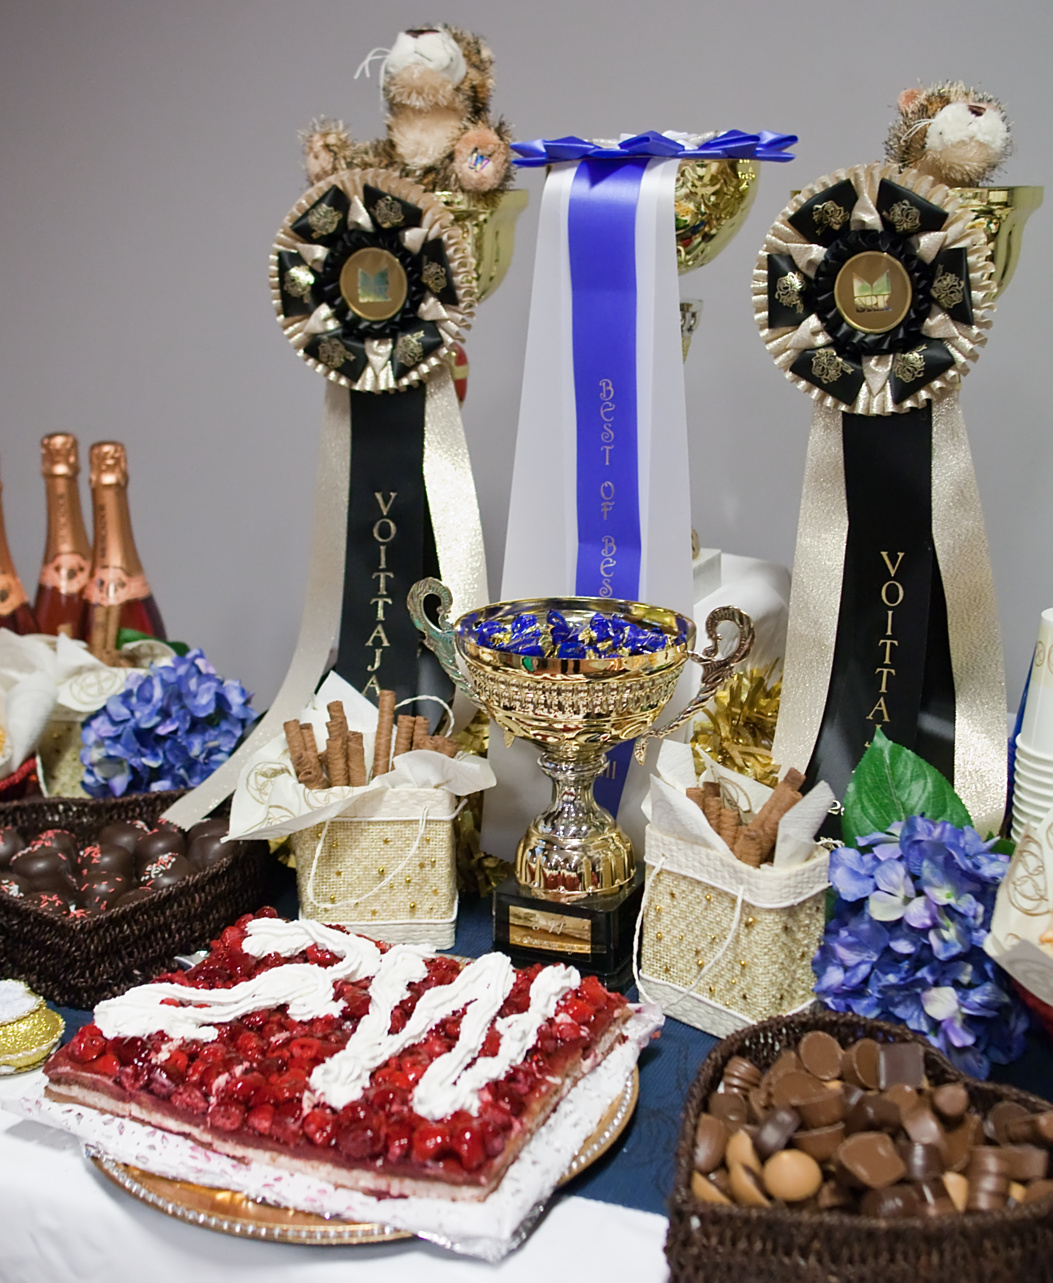 the OCI party, photo 139194, 2010-01-09